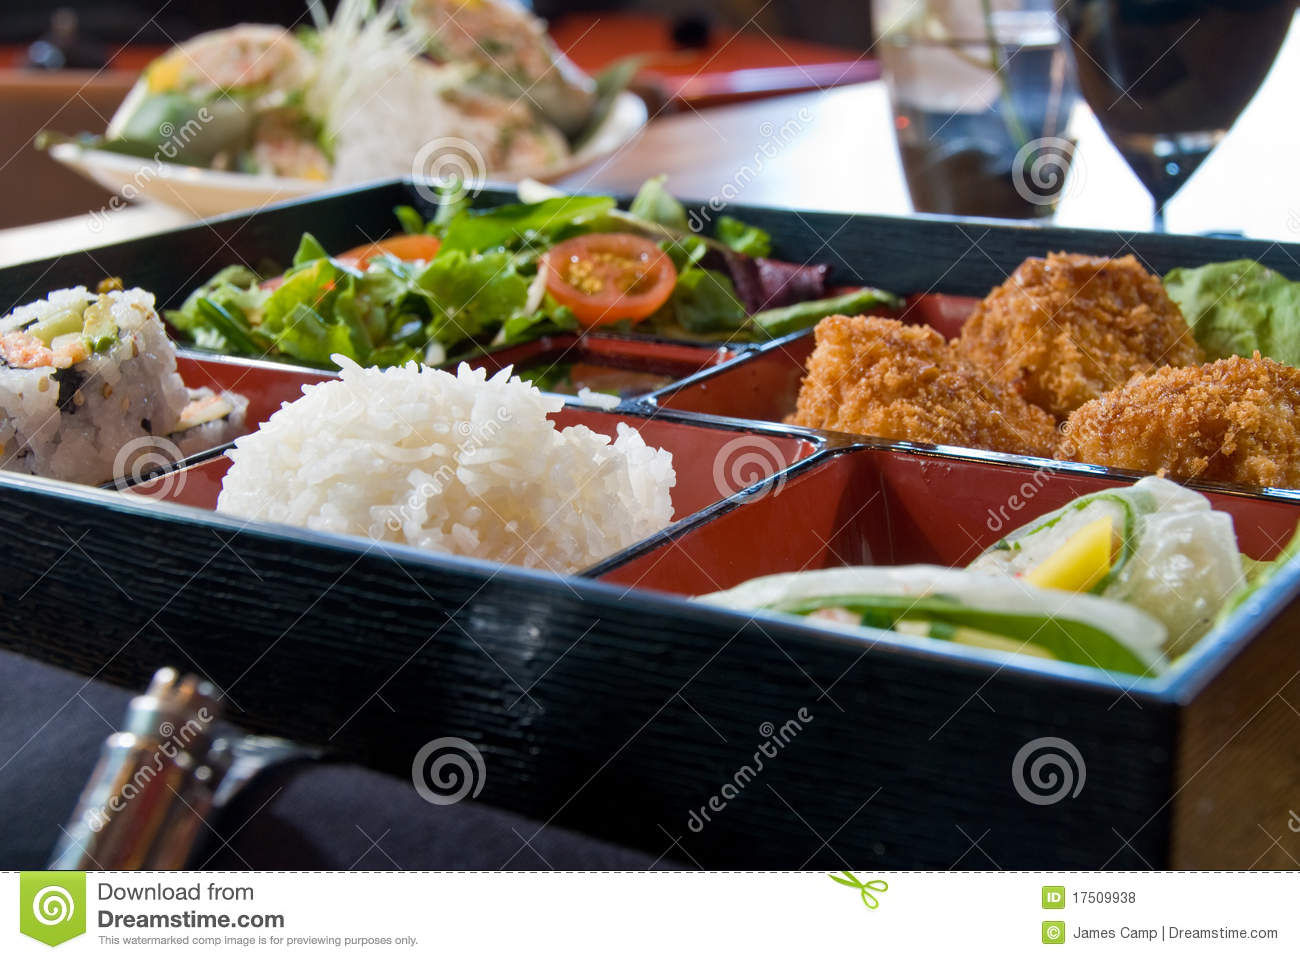 lunch bento box royalty free stock photos image 17509938. Black Bedroom Furniture Sets. Home Design Ideas